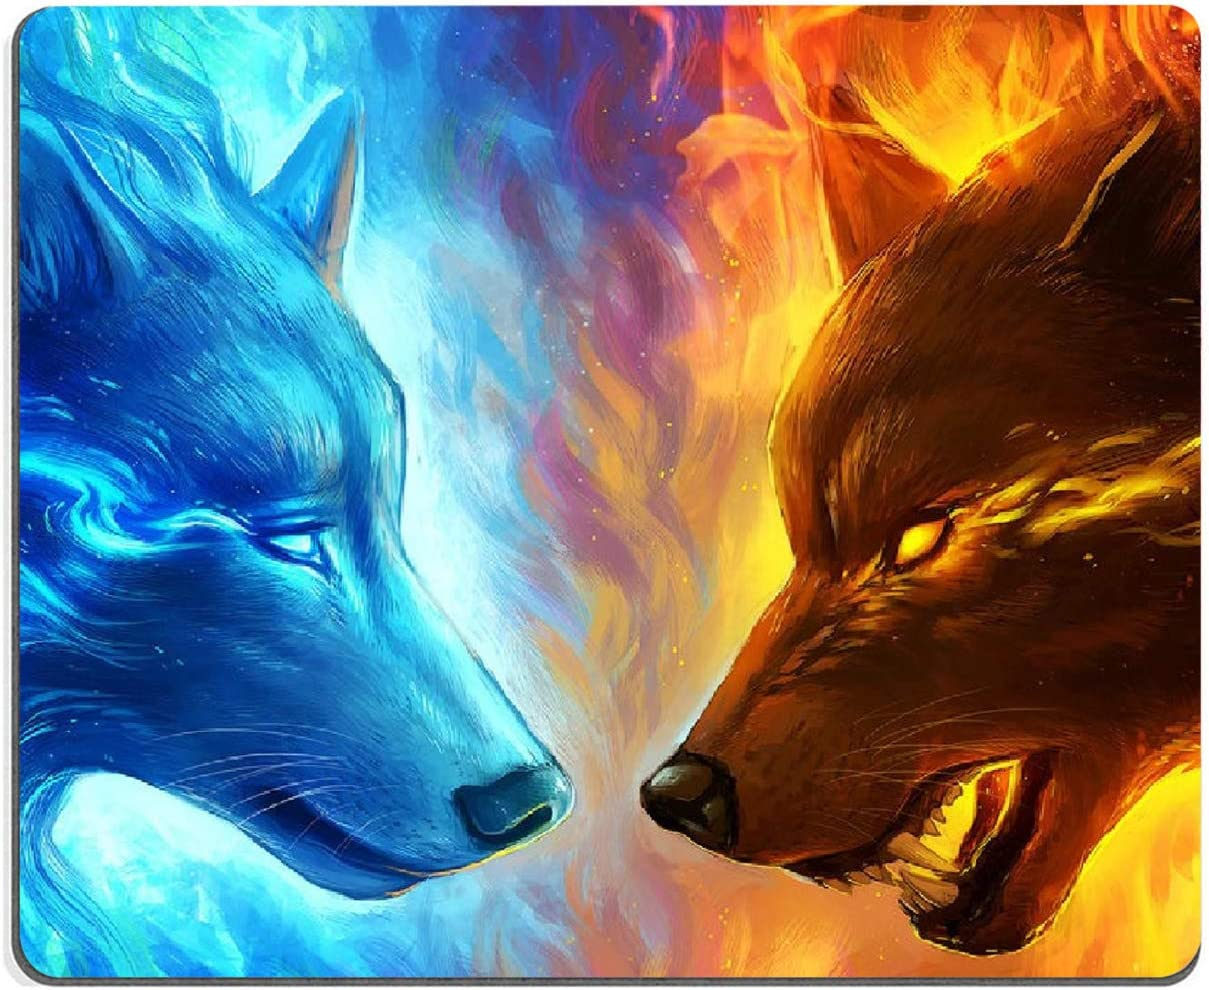 """Ice and Fire Wolf Head Galaxy Mouse Pad,Gaming Non-Slip Rubber Base Mouse Pads for Computers Laptop Office, 9.5""""x7.9""""x0.12"""" Inch(240mm x 200mm x 3mm)"""